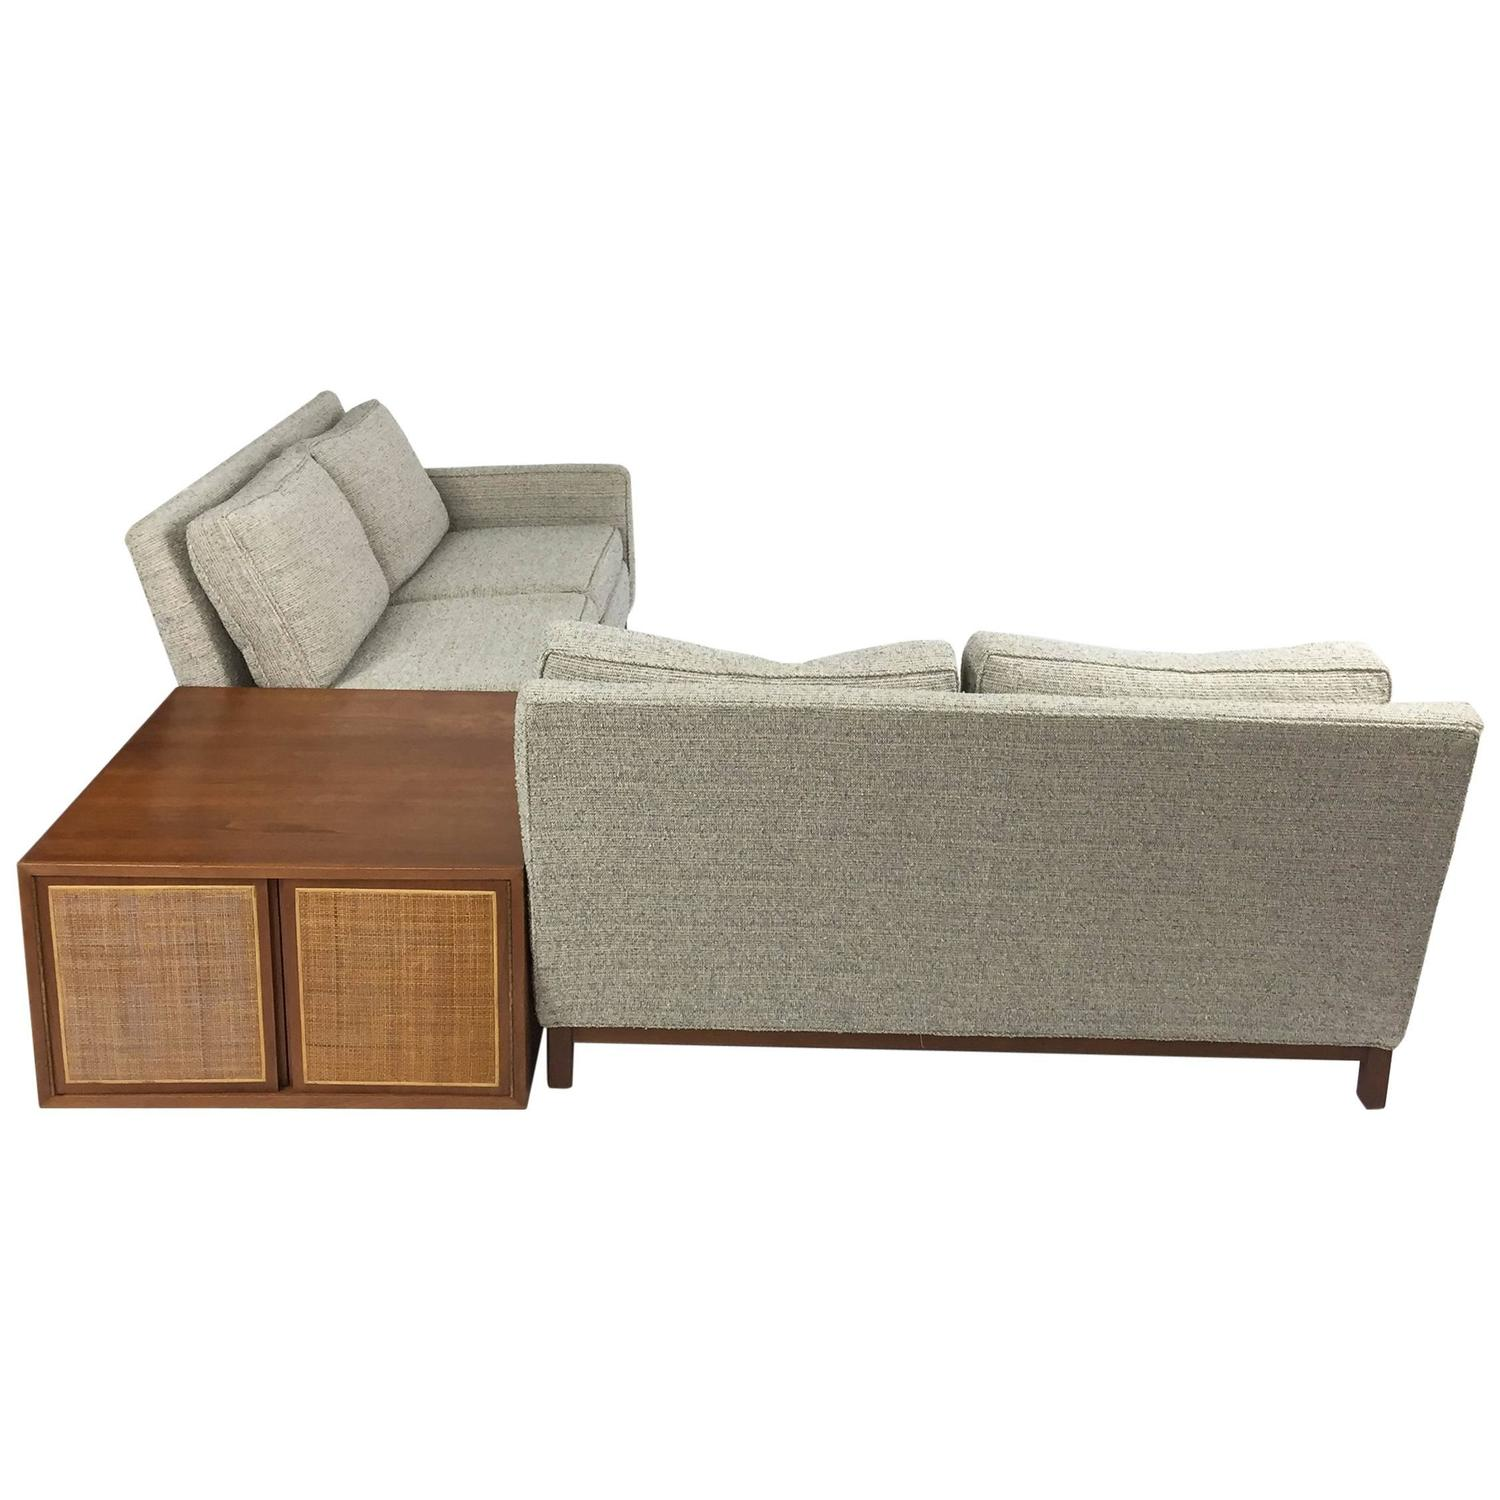 1960s Sectional Sofas 83 For Sale at 1stdibs